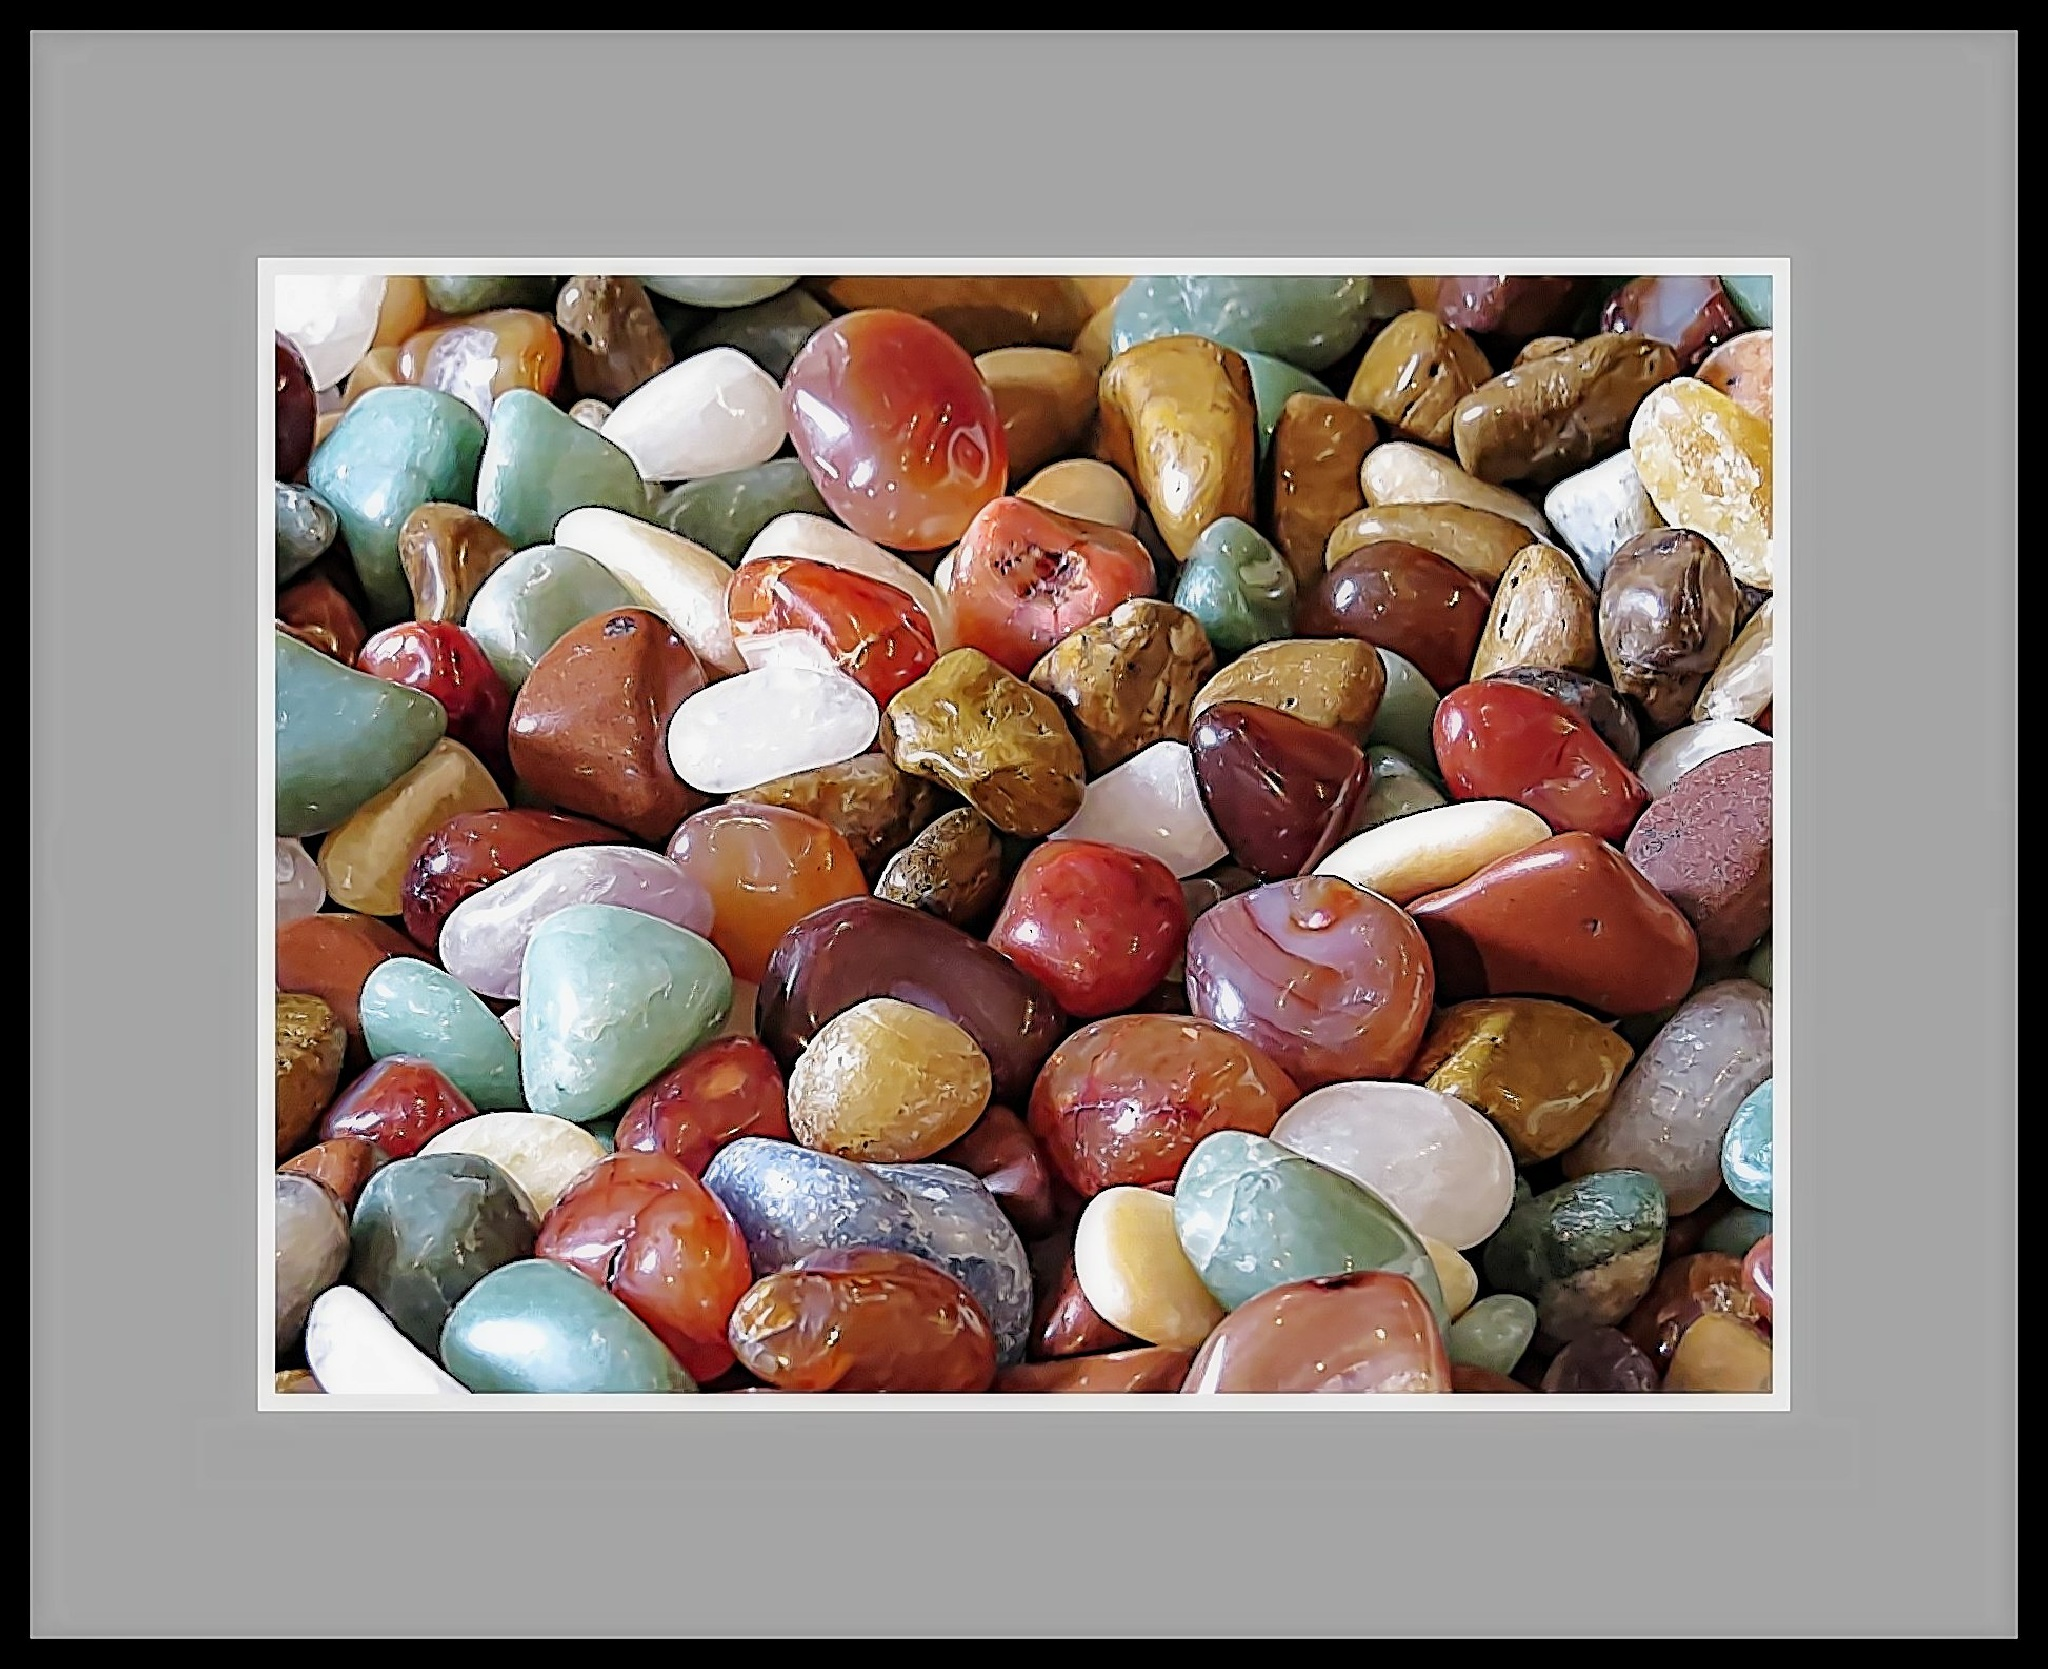 Stones of many colors by lori.adkins.58